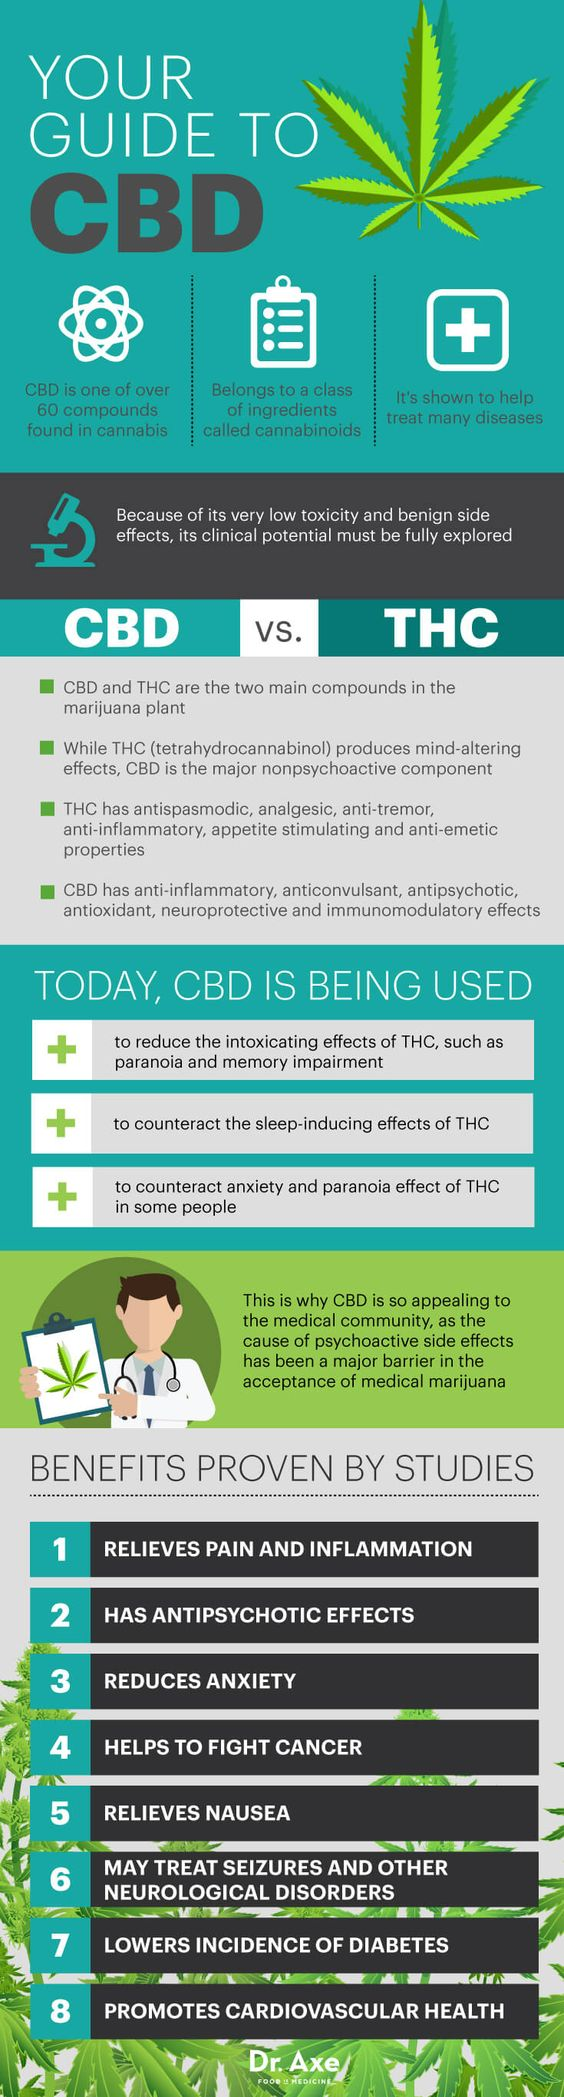 Cannabidiol, or CBD, Benefits for Pain, Mental Illness & Anxiety - Dr. Axe